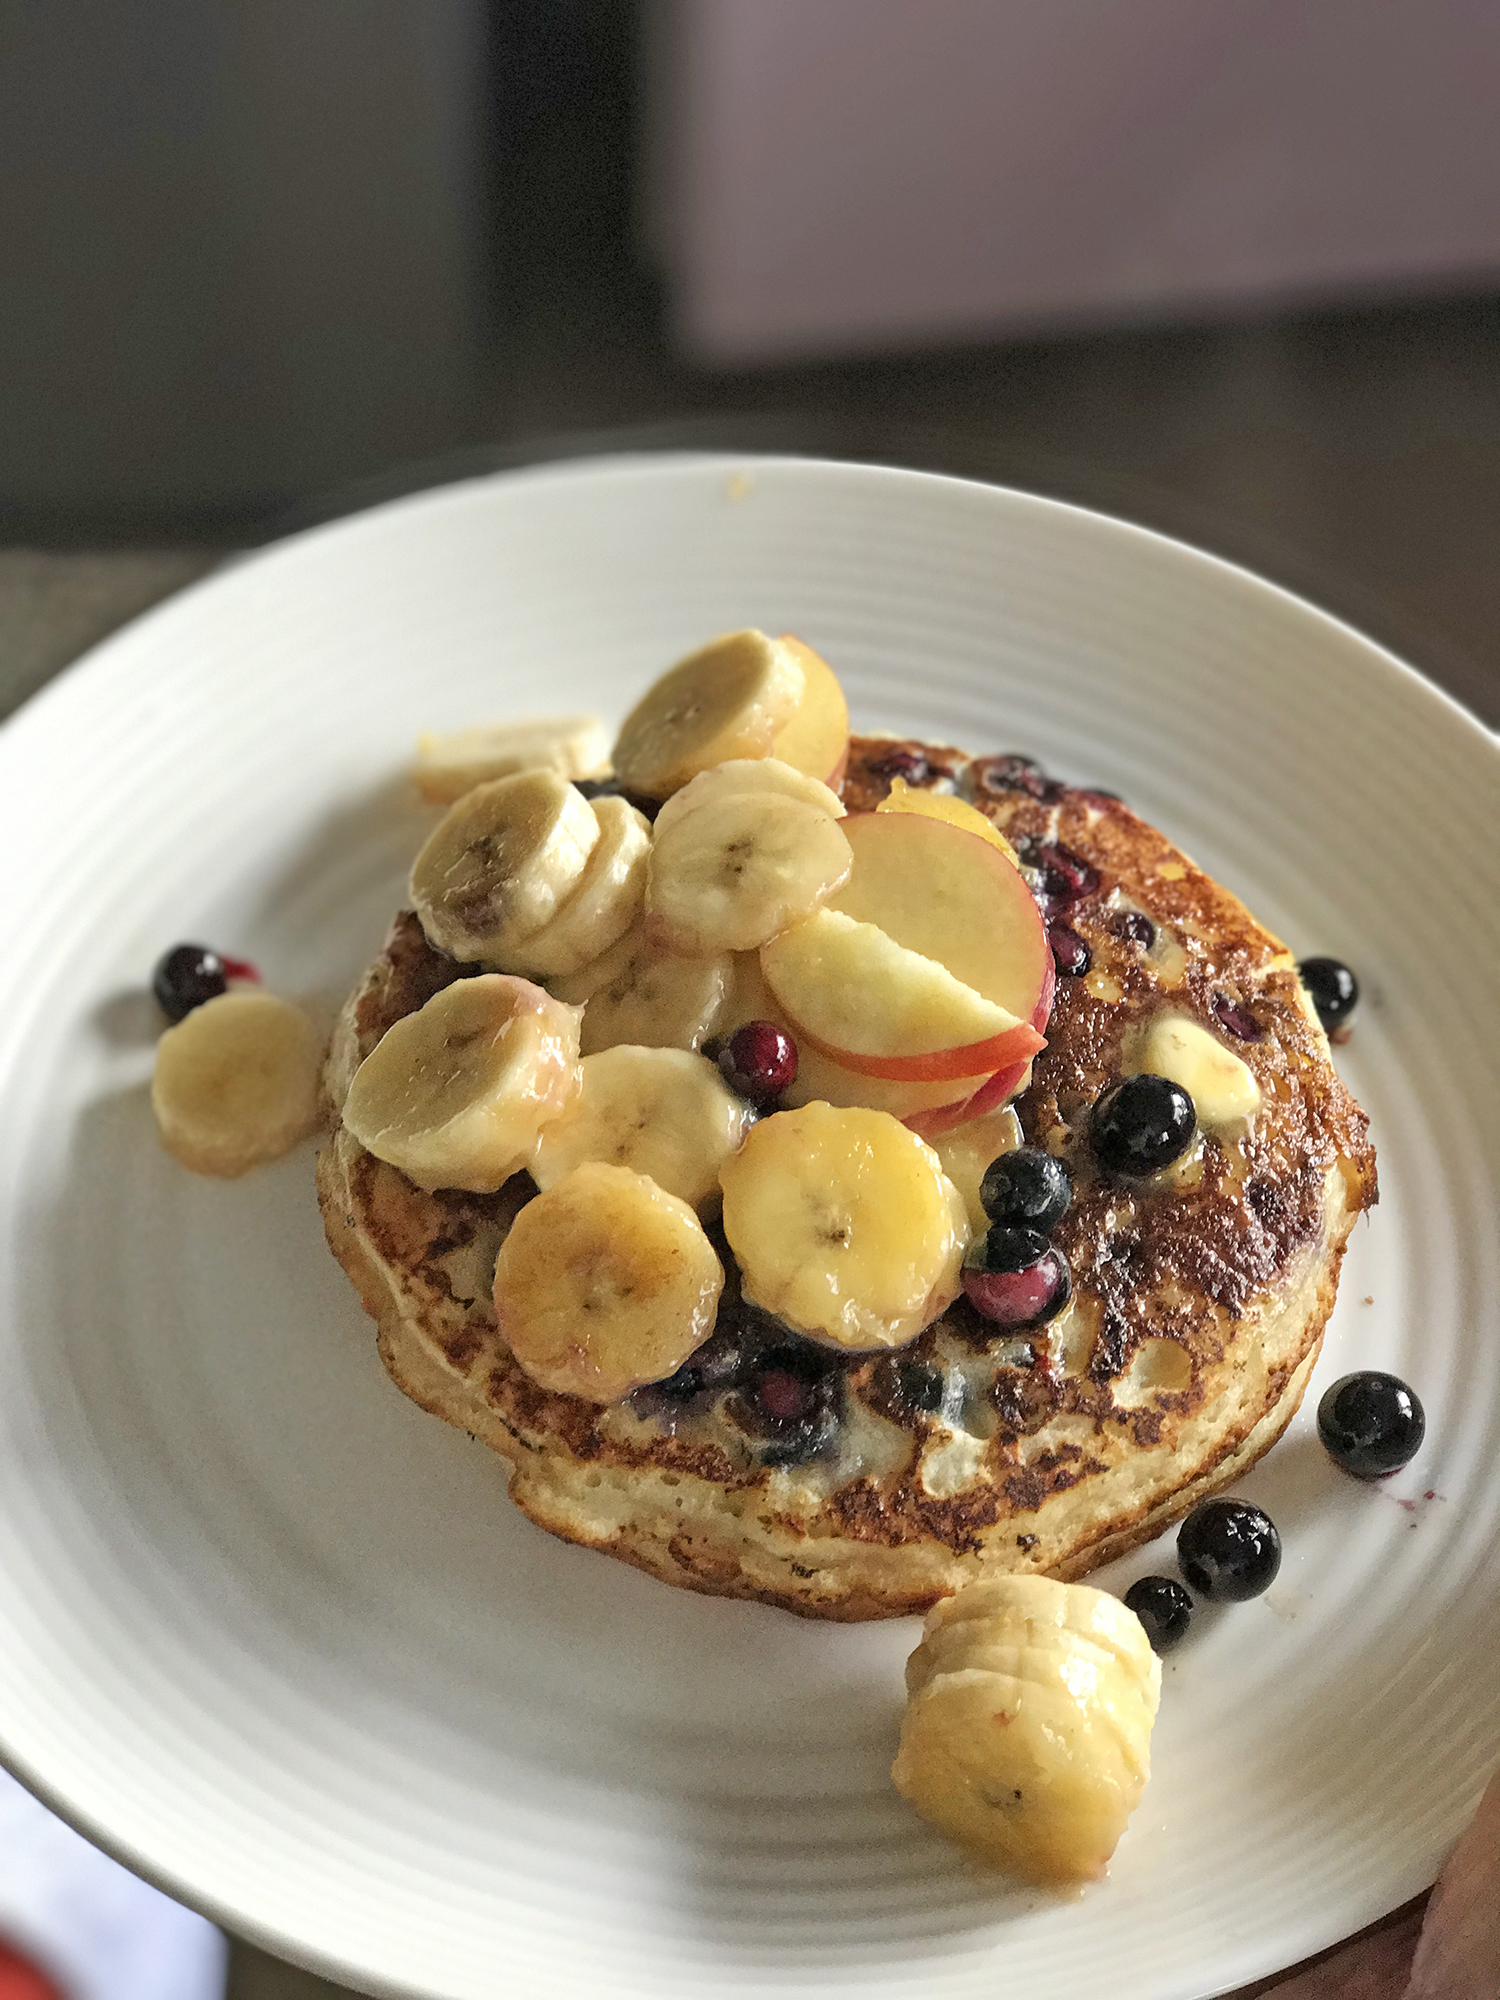 Pancake Mix  Whip it and fill it up with bananas, blueberries, flaked almonds. The fruits stop me from going over-board with the maple syrup though I should seriously stop having bacon on the side. Fast and easy breakfasts..